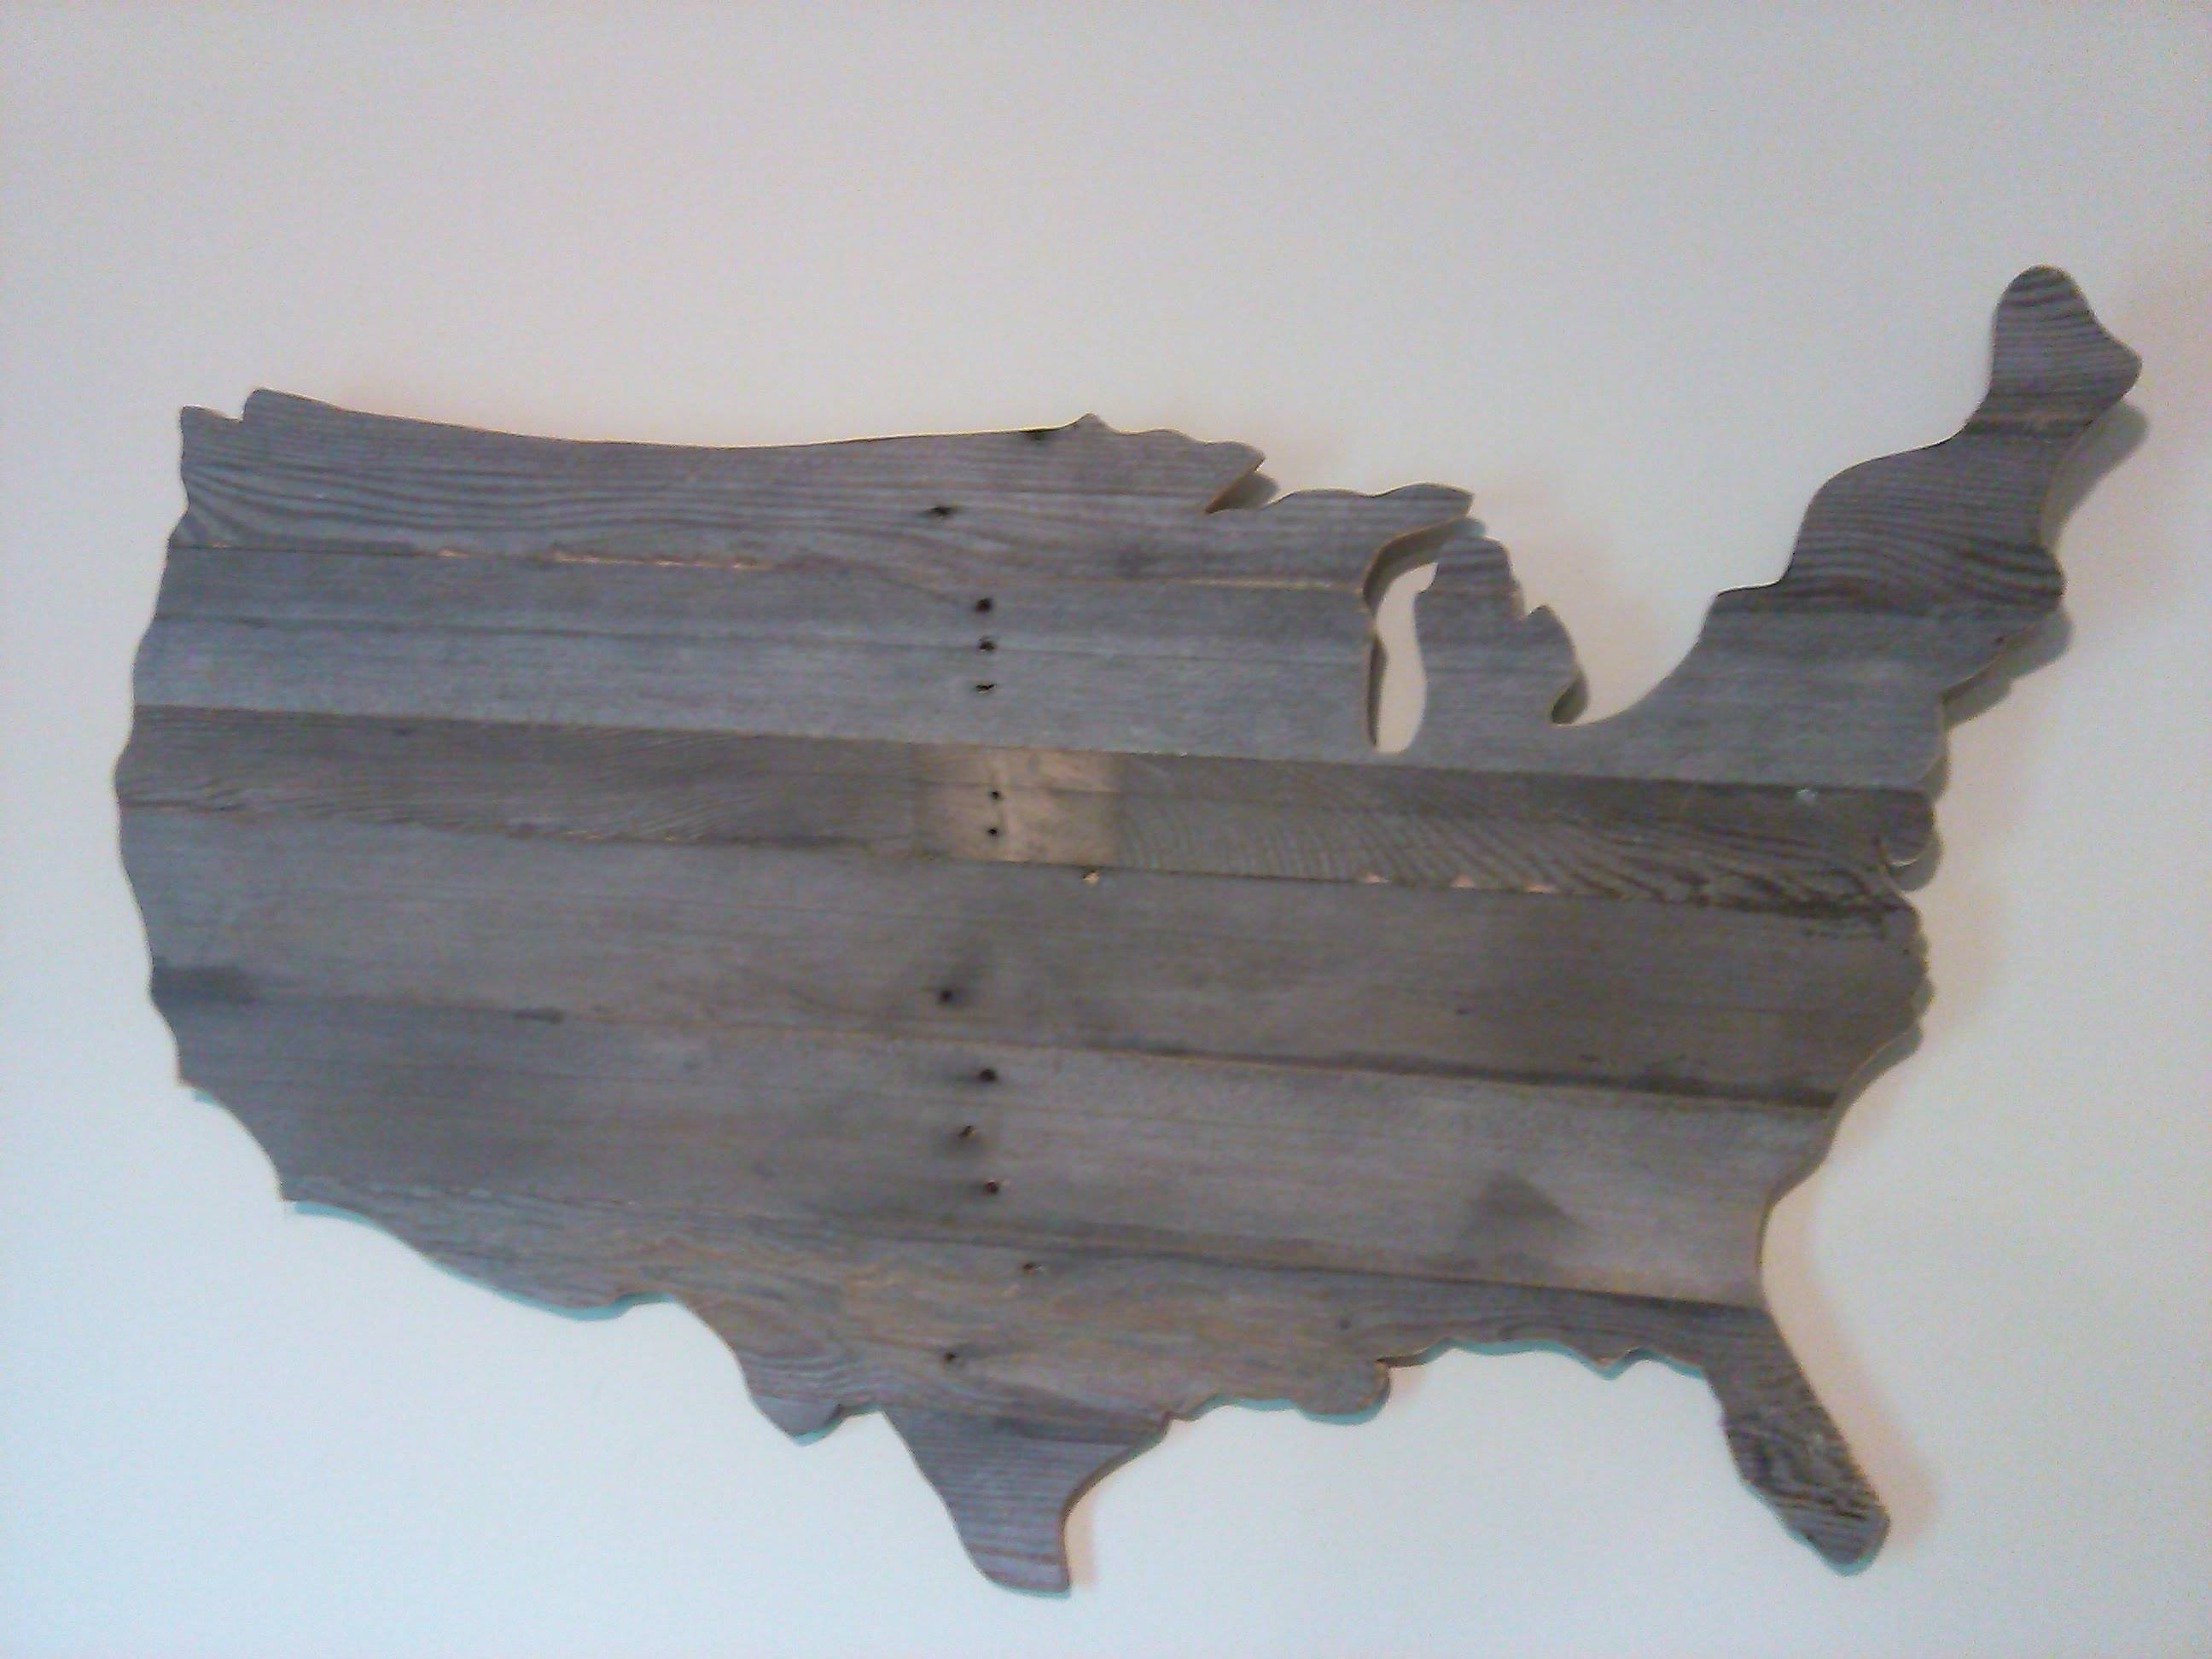 How To Make A Wooden Usa Map Wall Art Out Of Pallets – Youtube Throughout Best And Newest Usa Map Wall Art (Gallery 6 of 20)